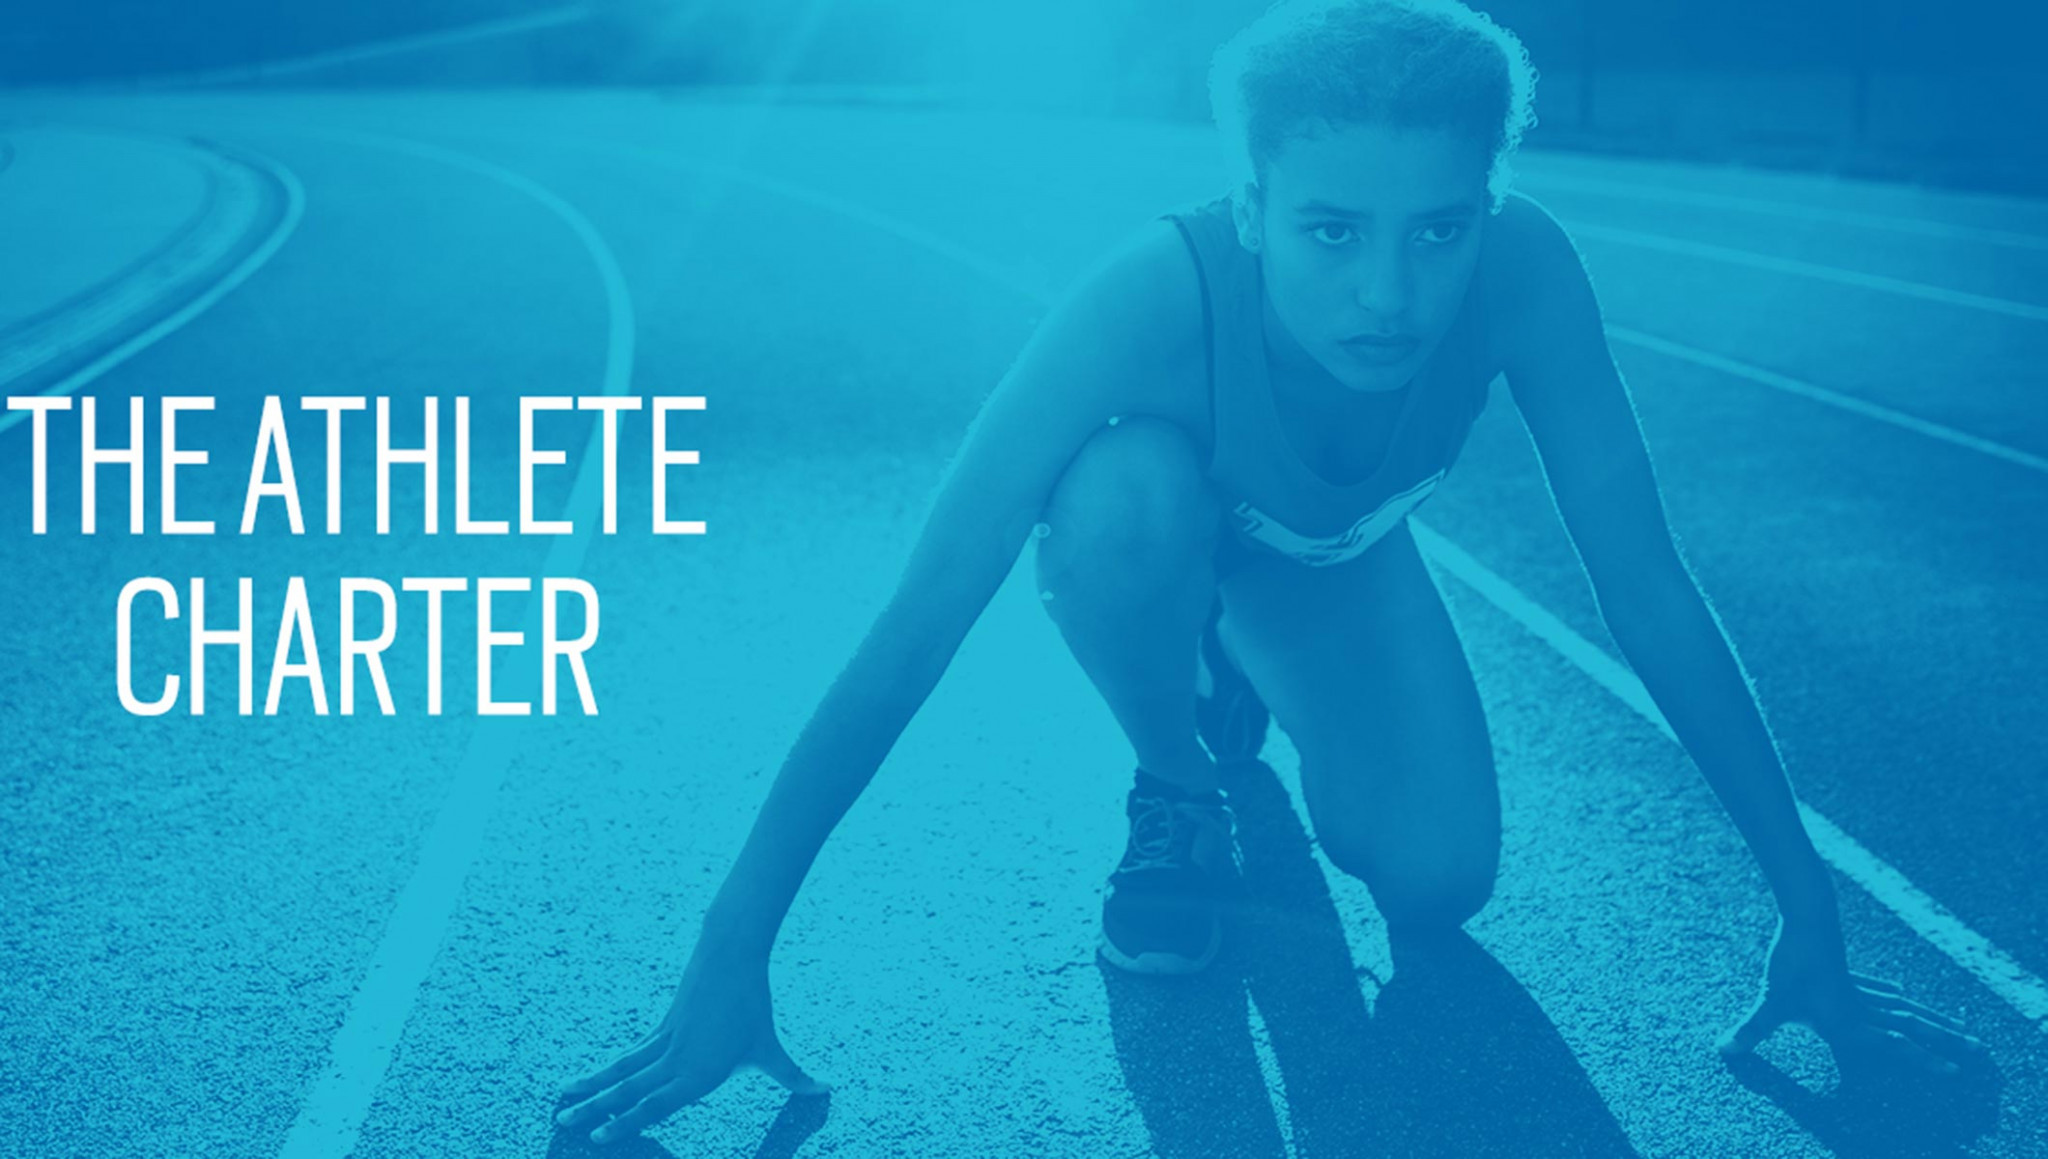 The steering committee are continuing to develop the Athlete Charter ©IOC